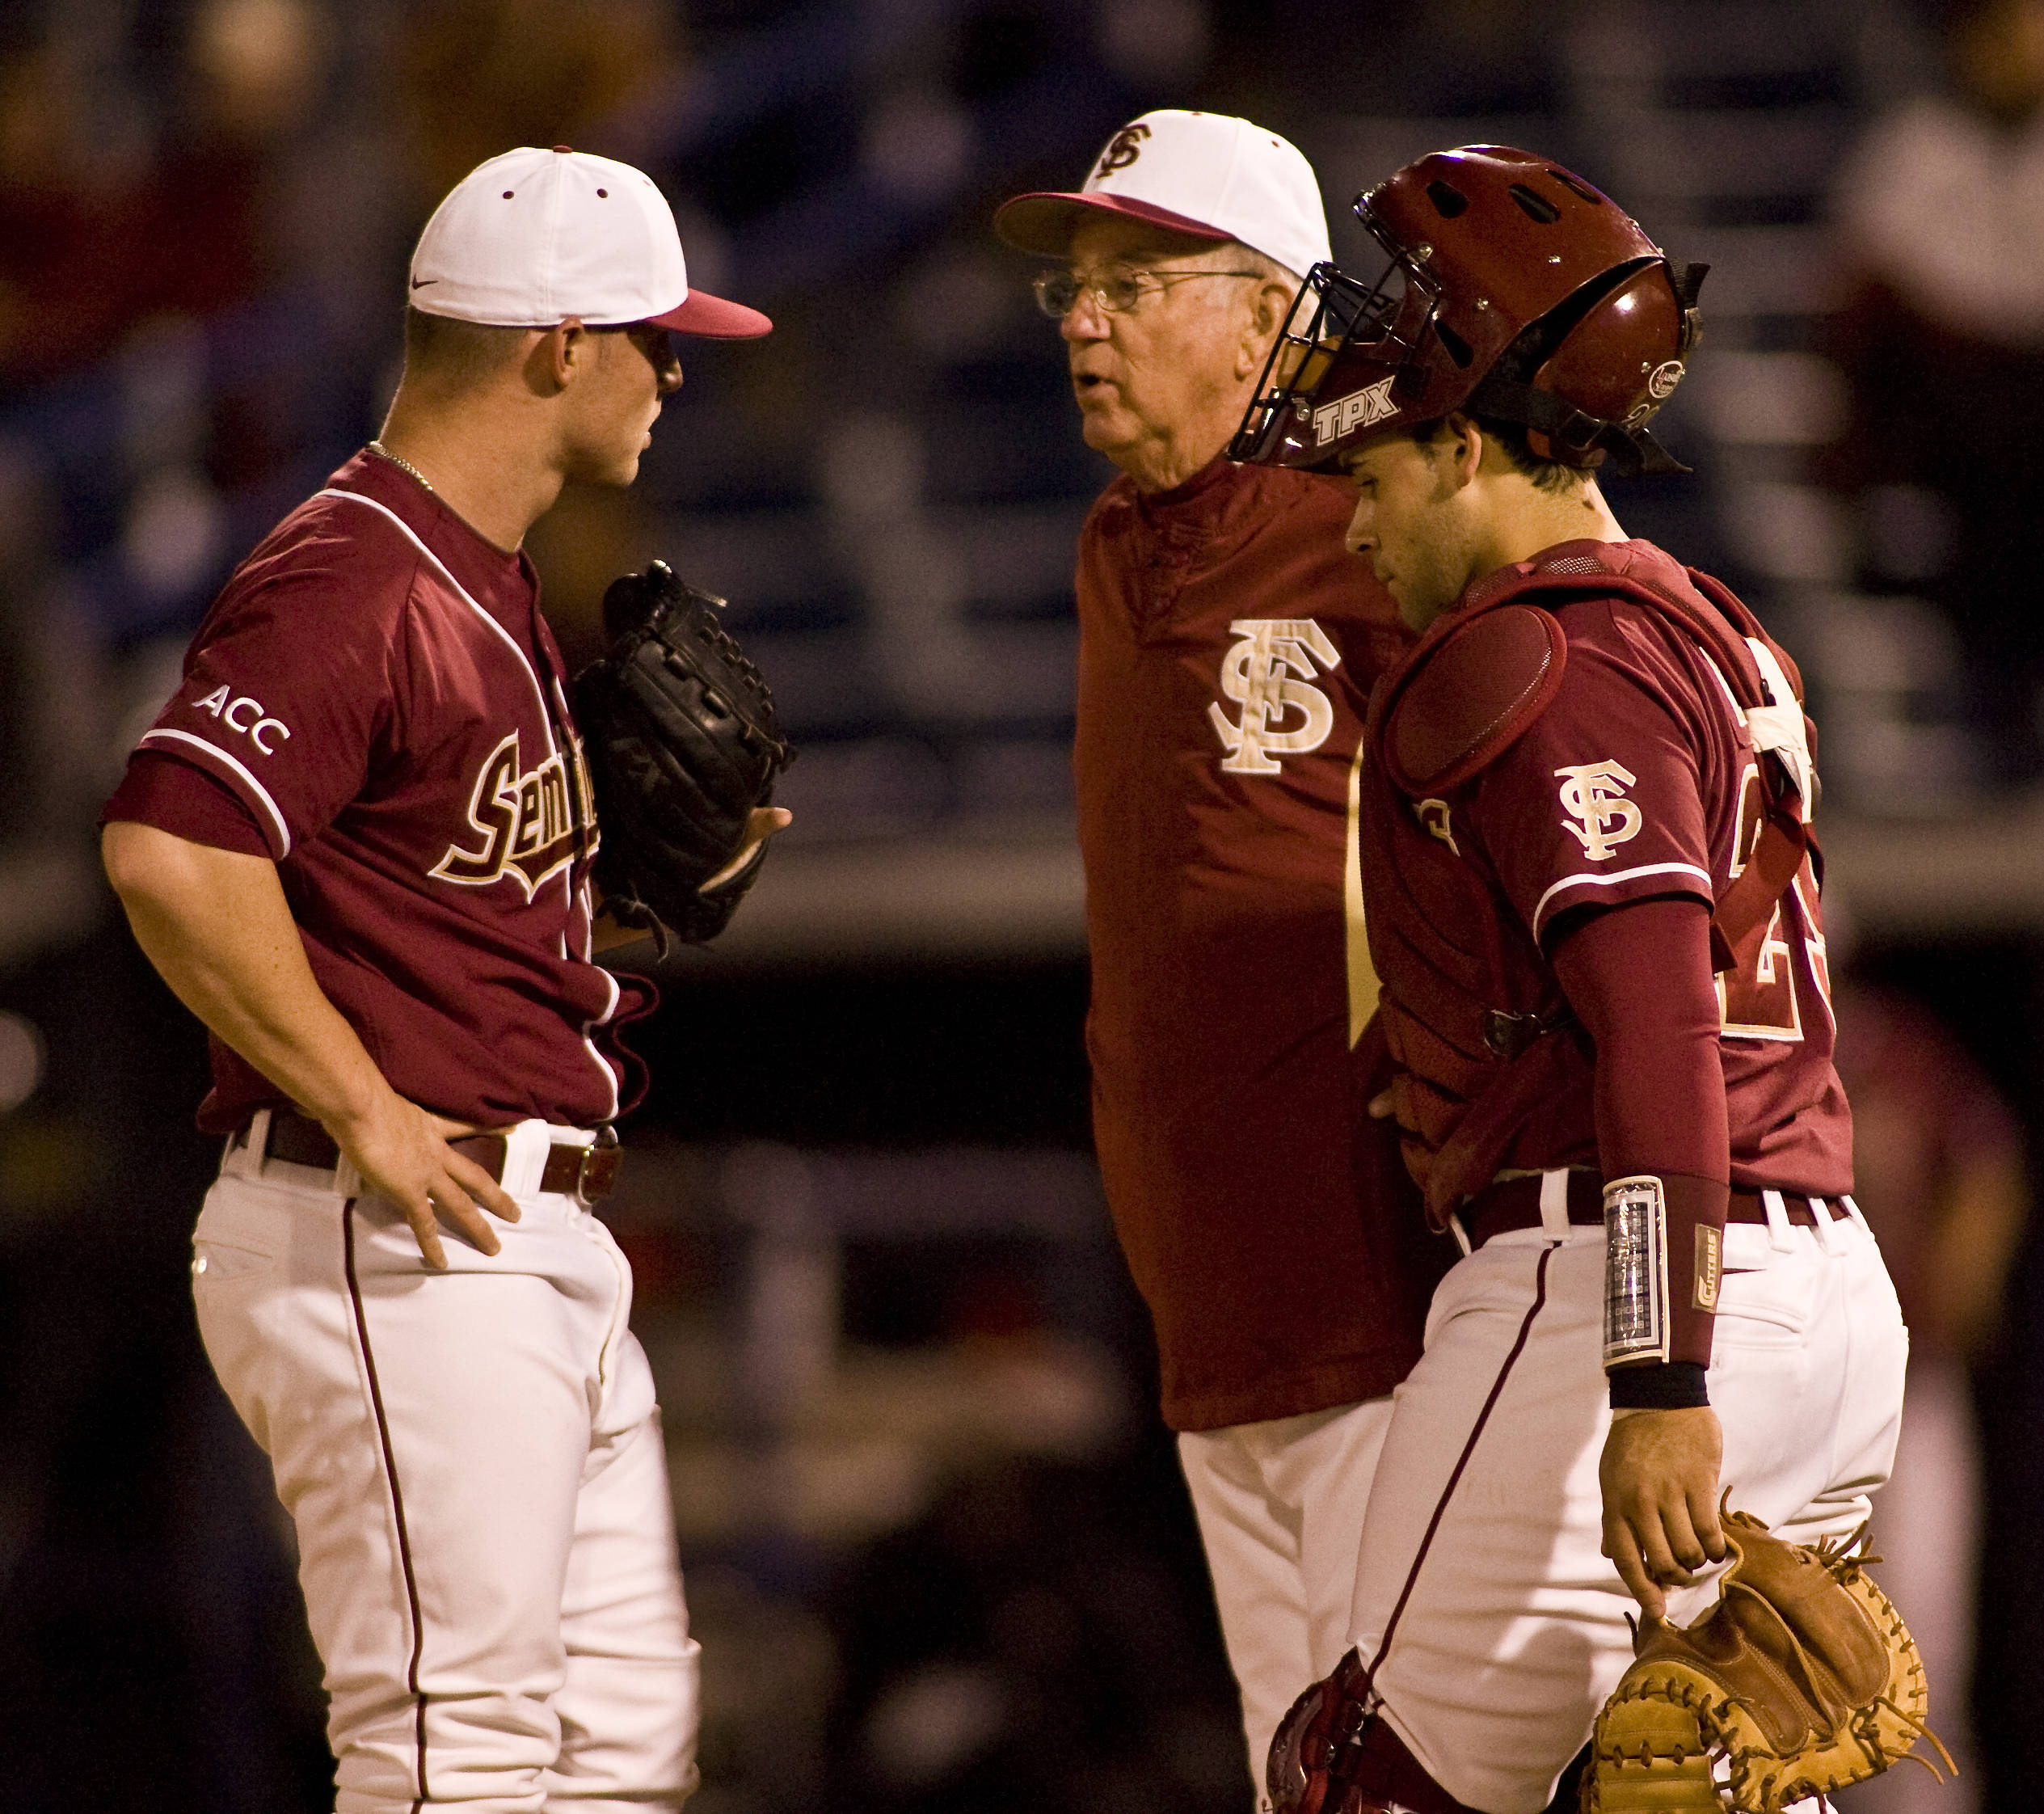 Andrew Durden (left) on the mound with head coach Mike Martin and catcher Rafael Lopez